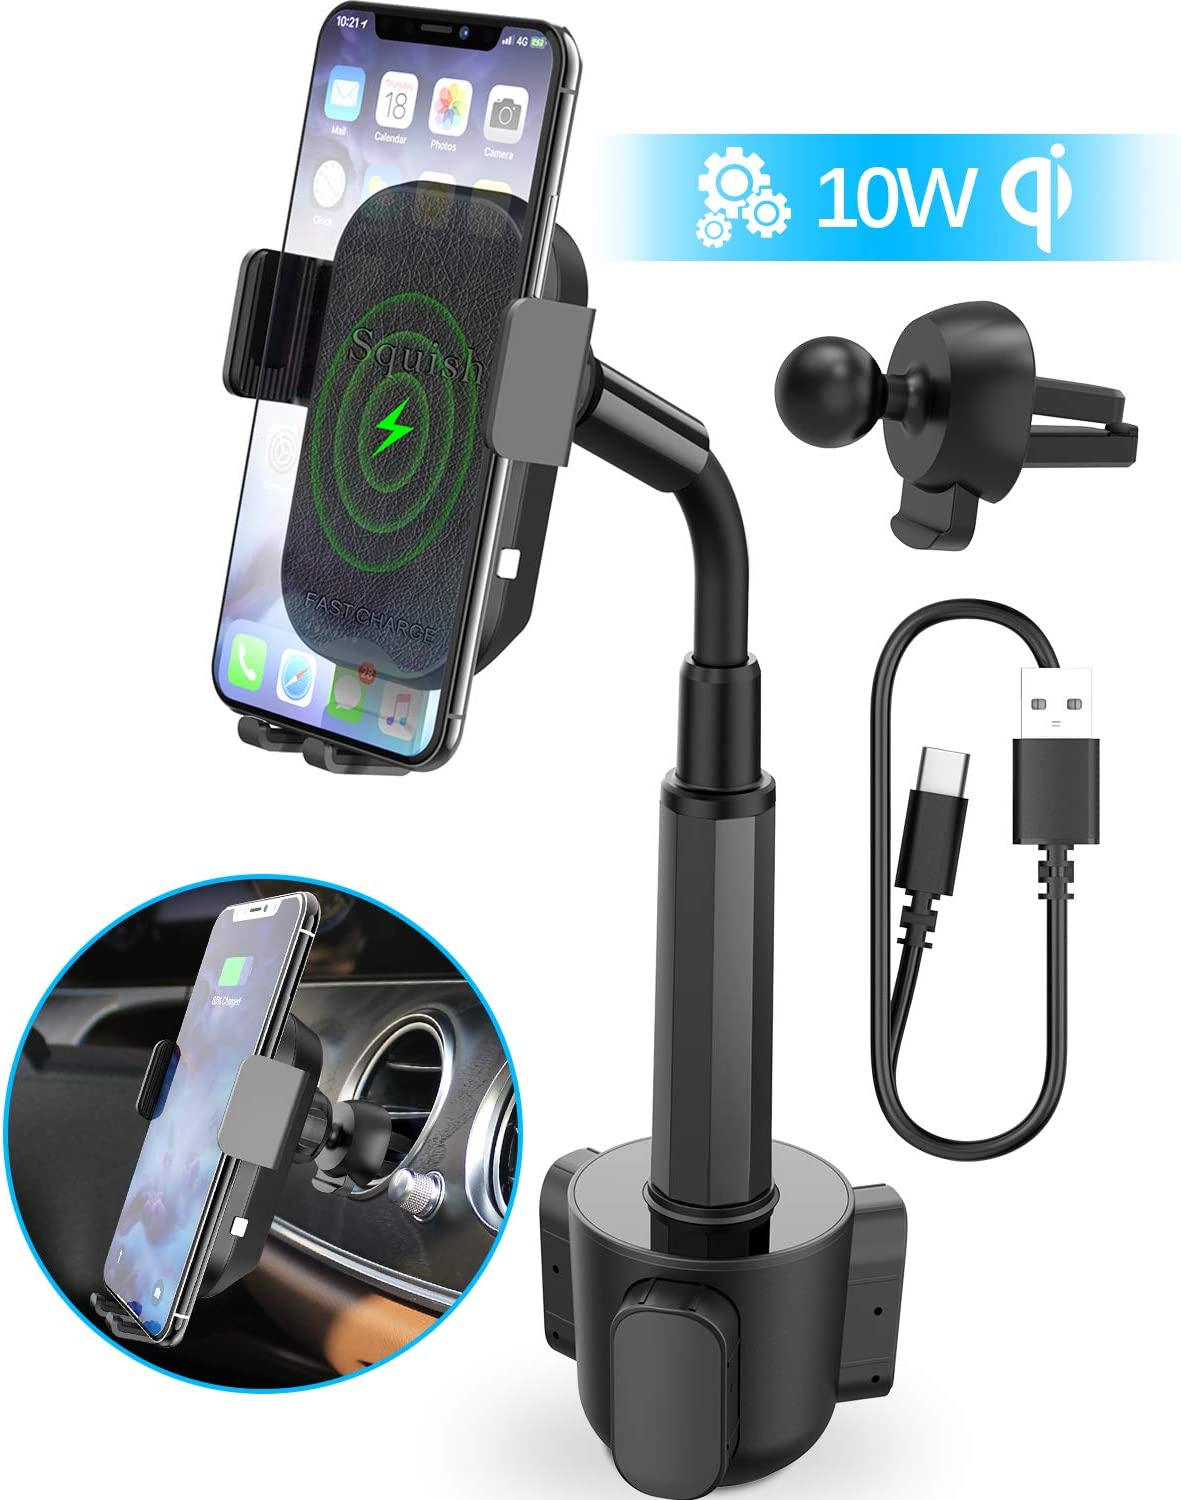 Wireless Car Charger, Squish 2 in 1 Universal Cell Phone Holder Cup Holder Phone Mount Car Air Vent Holder for iPhone, Samsung, Moto, Huawei, Nokia,